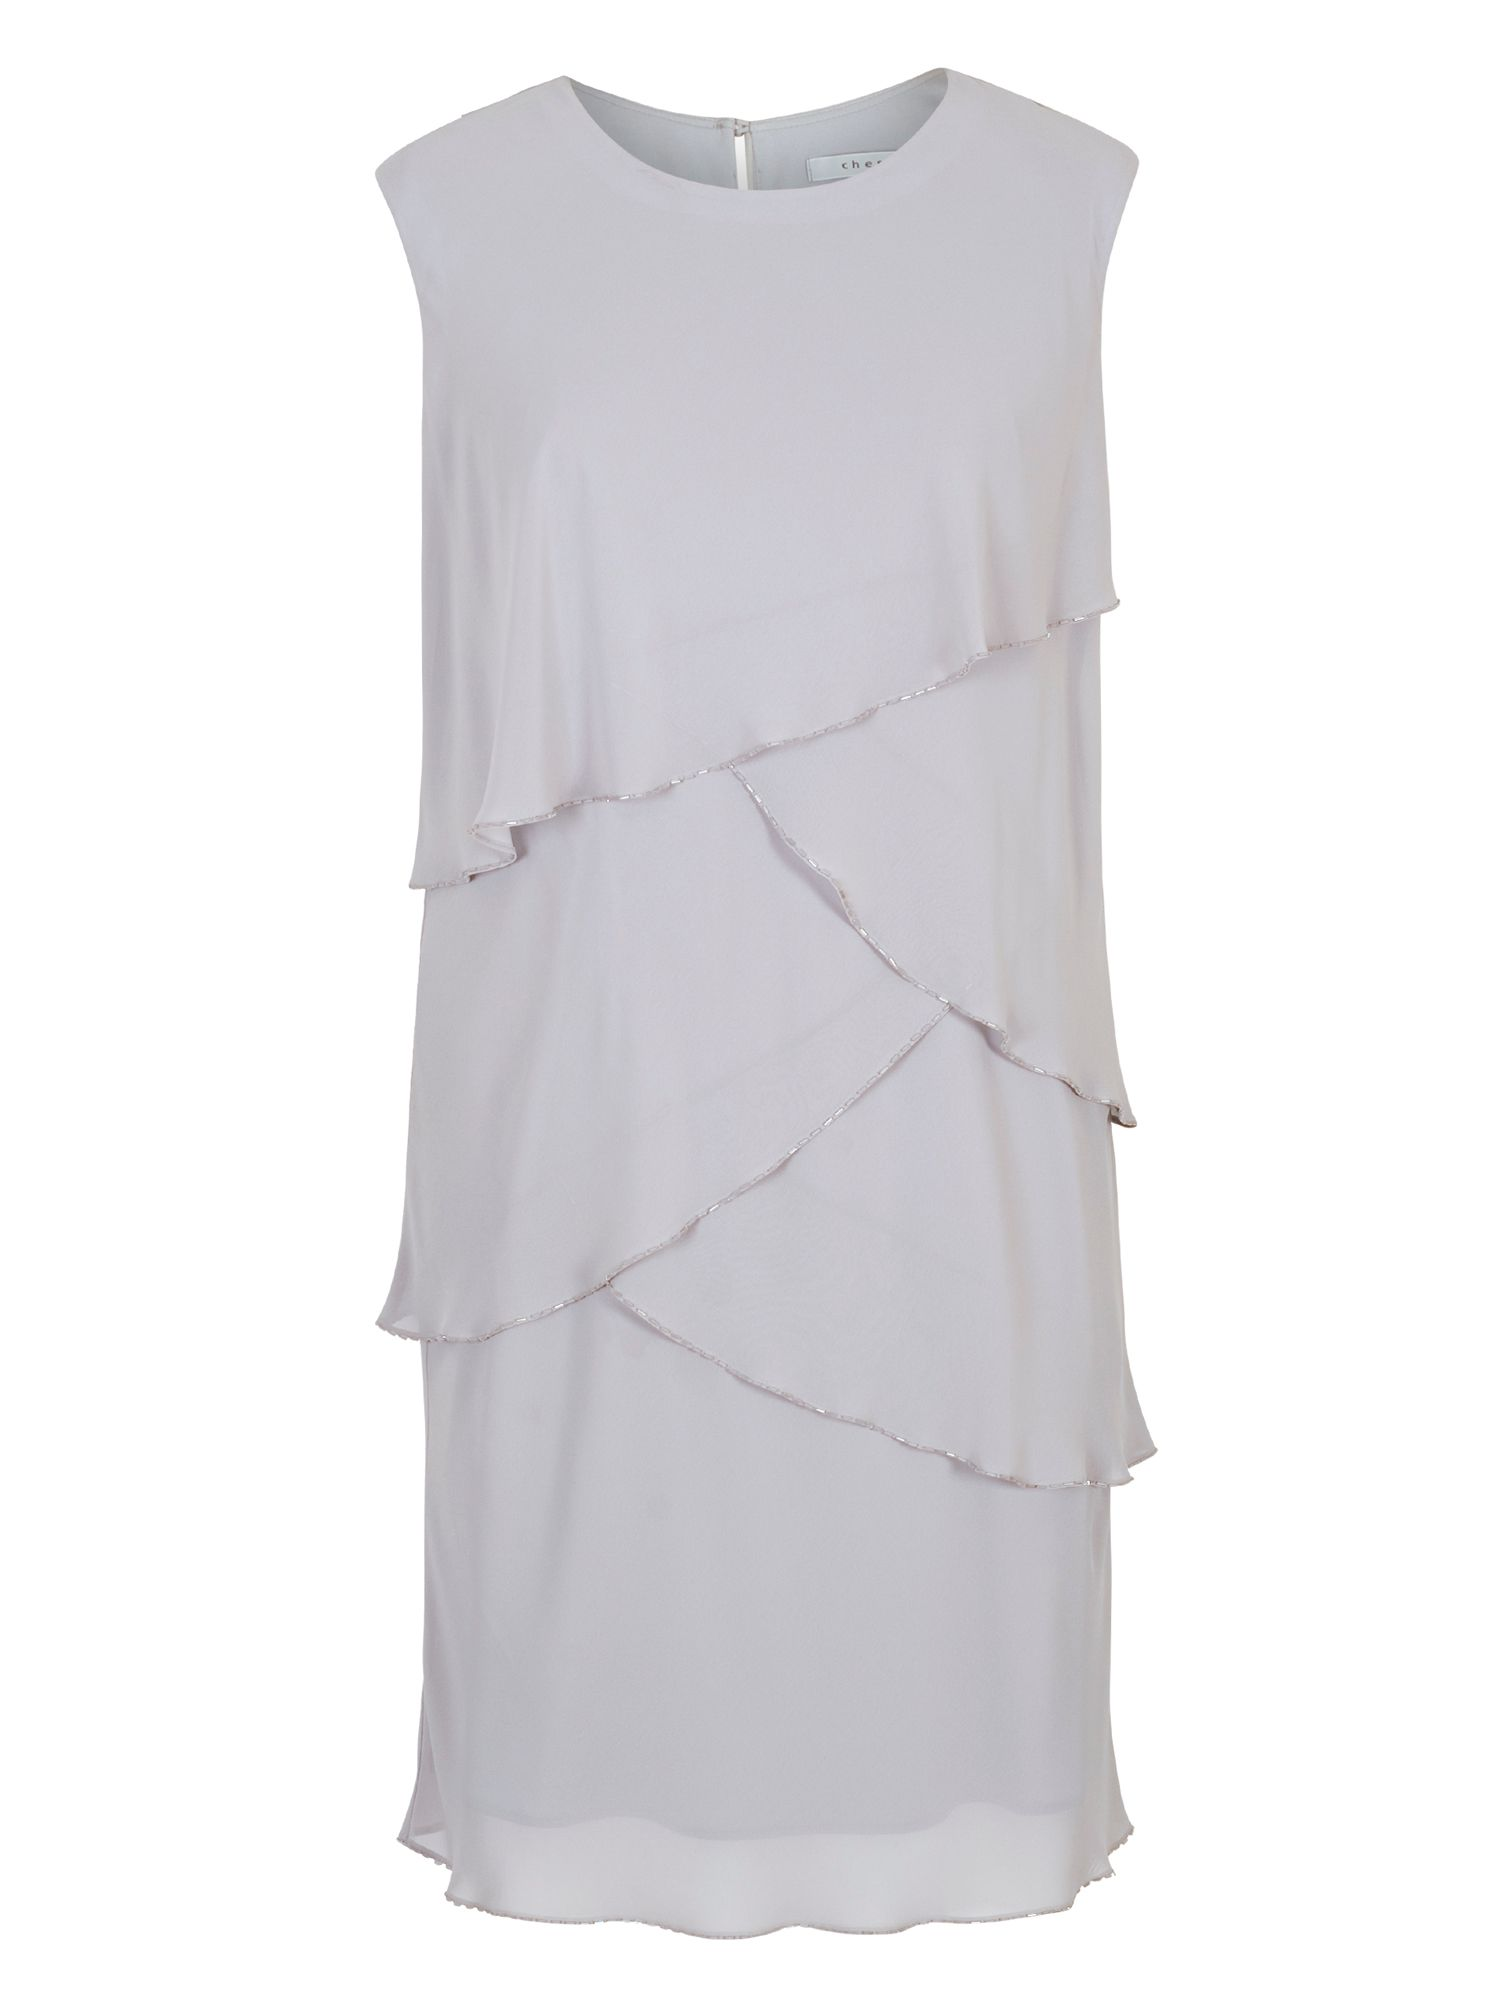 Fun 1920s Flapper Dresses & Quality Flapper Costumes Chesca Bead Trim Layered Chiffon Dress £185.00 AT vintagedancer.com